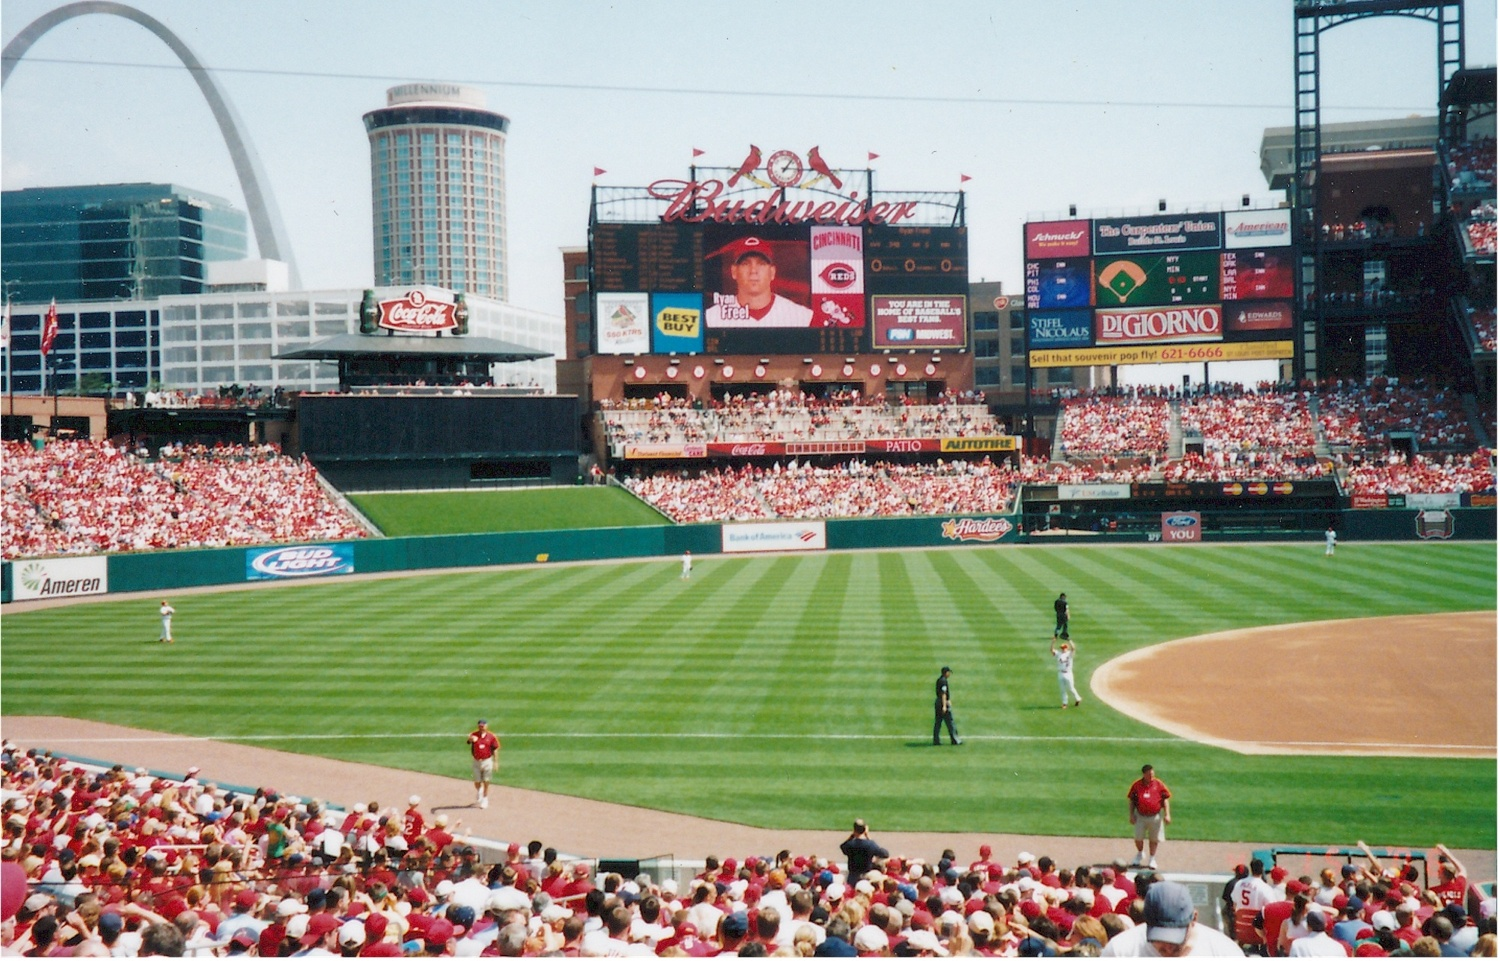 A St. Louis Cardinals game is a great attraction to help sell your house fast.